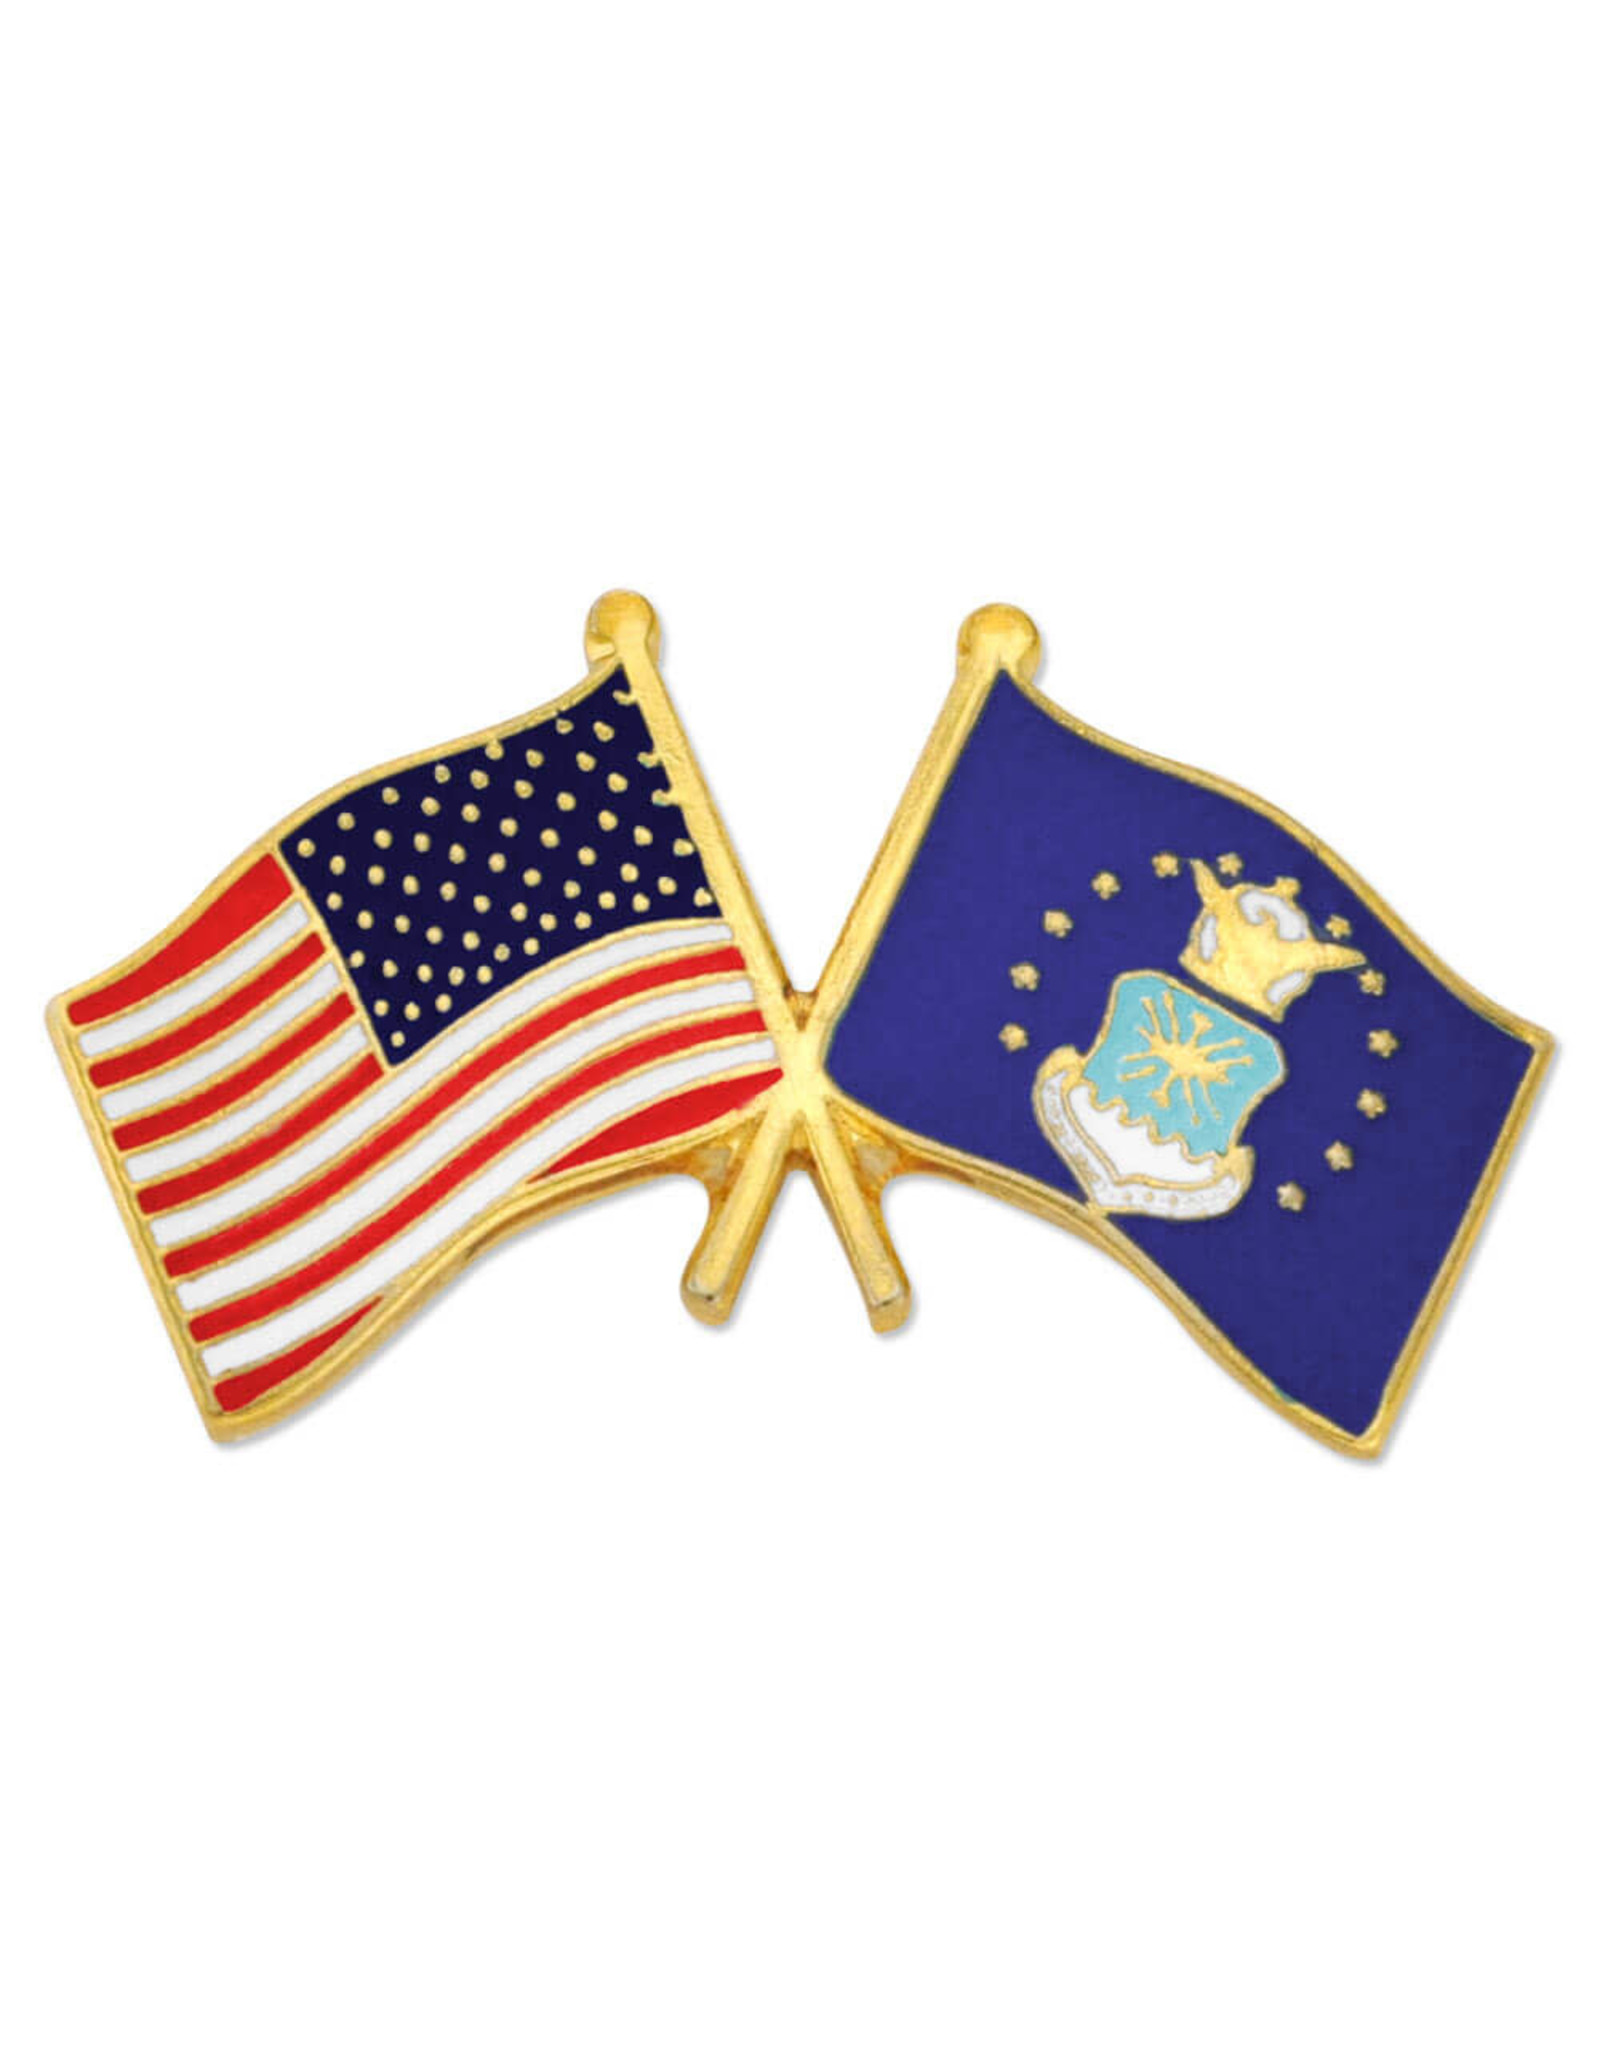 FWAM USA and US Air Force Flags, Pin